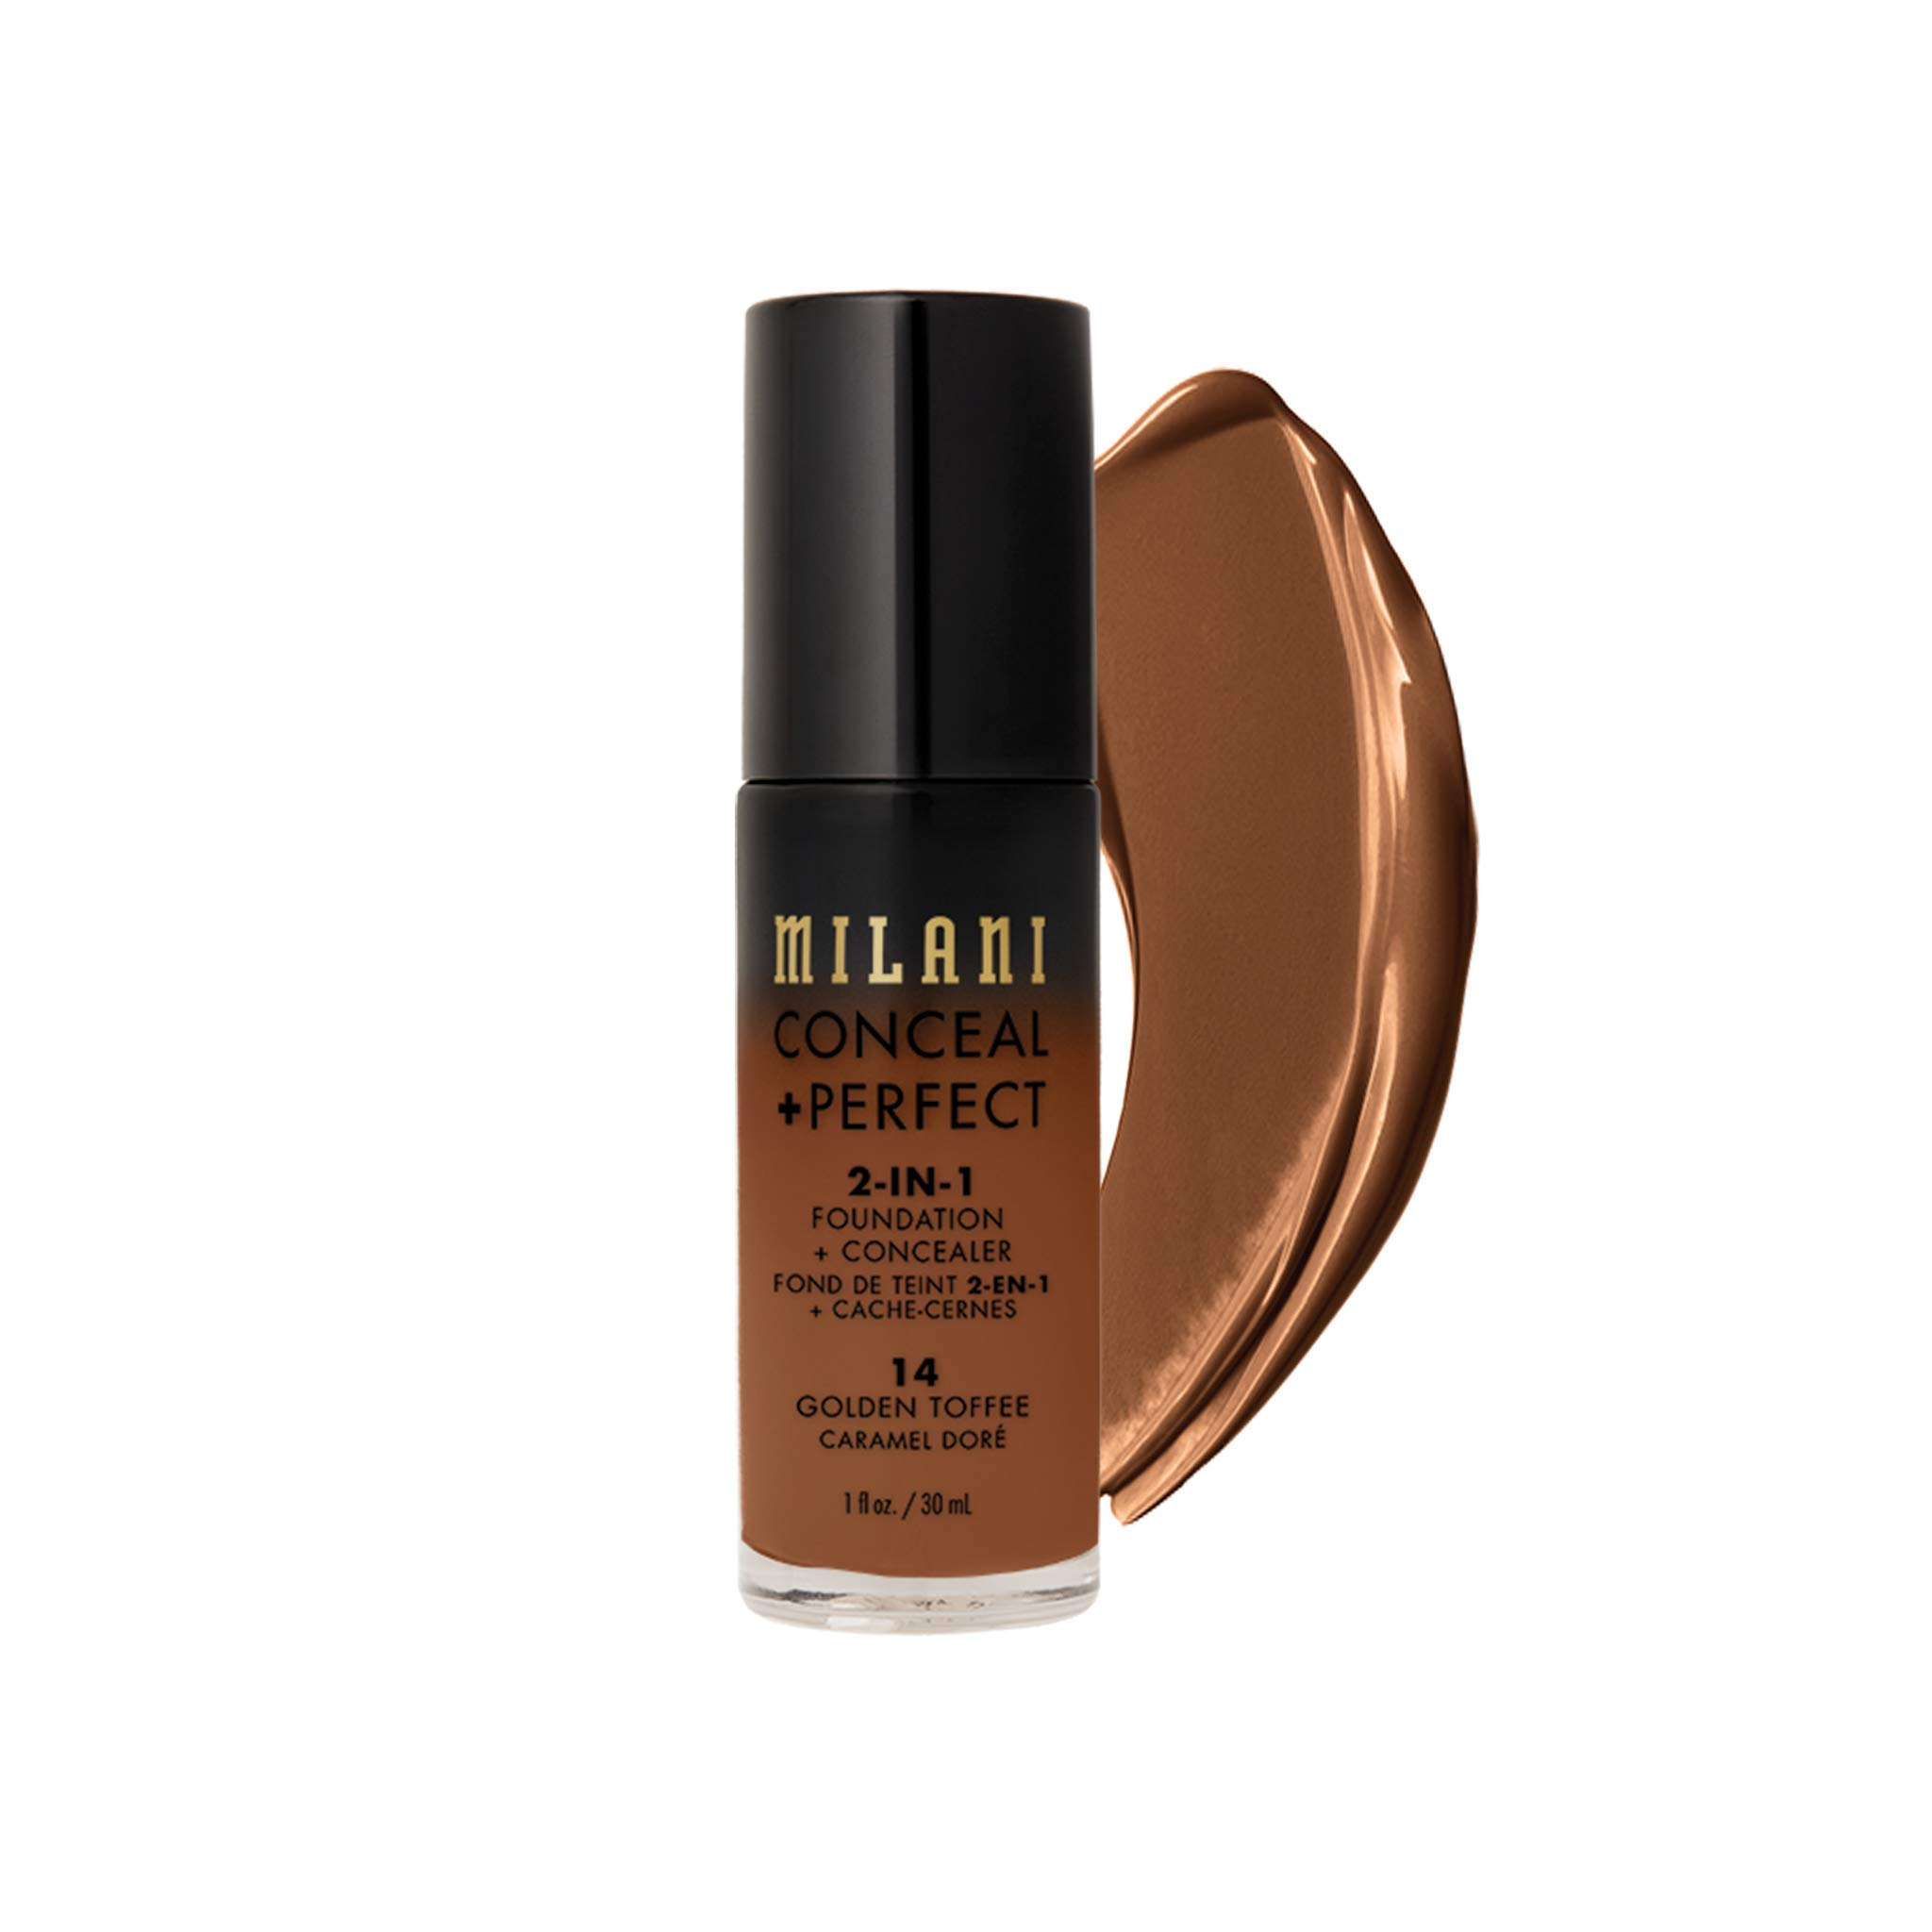 MILANI Conceal + Perfect 2-In-1 Foundation + Concealer - Golden Toffee